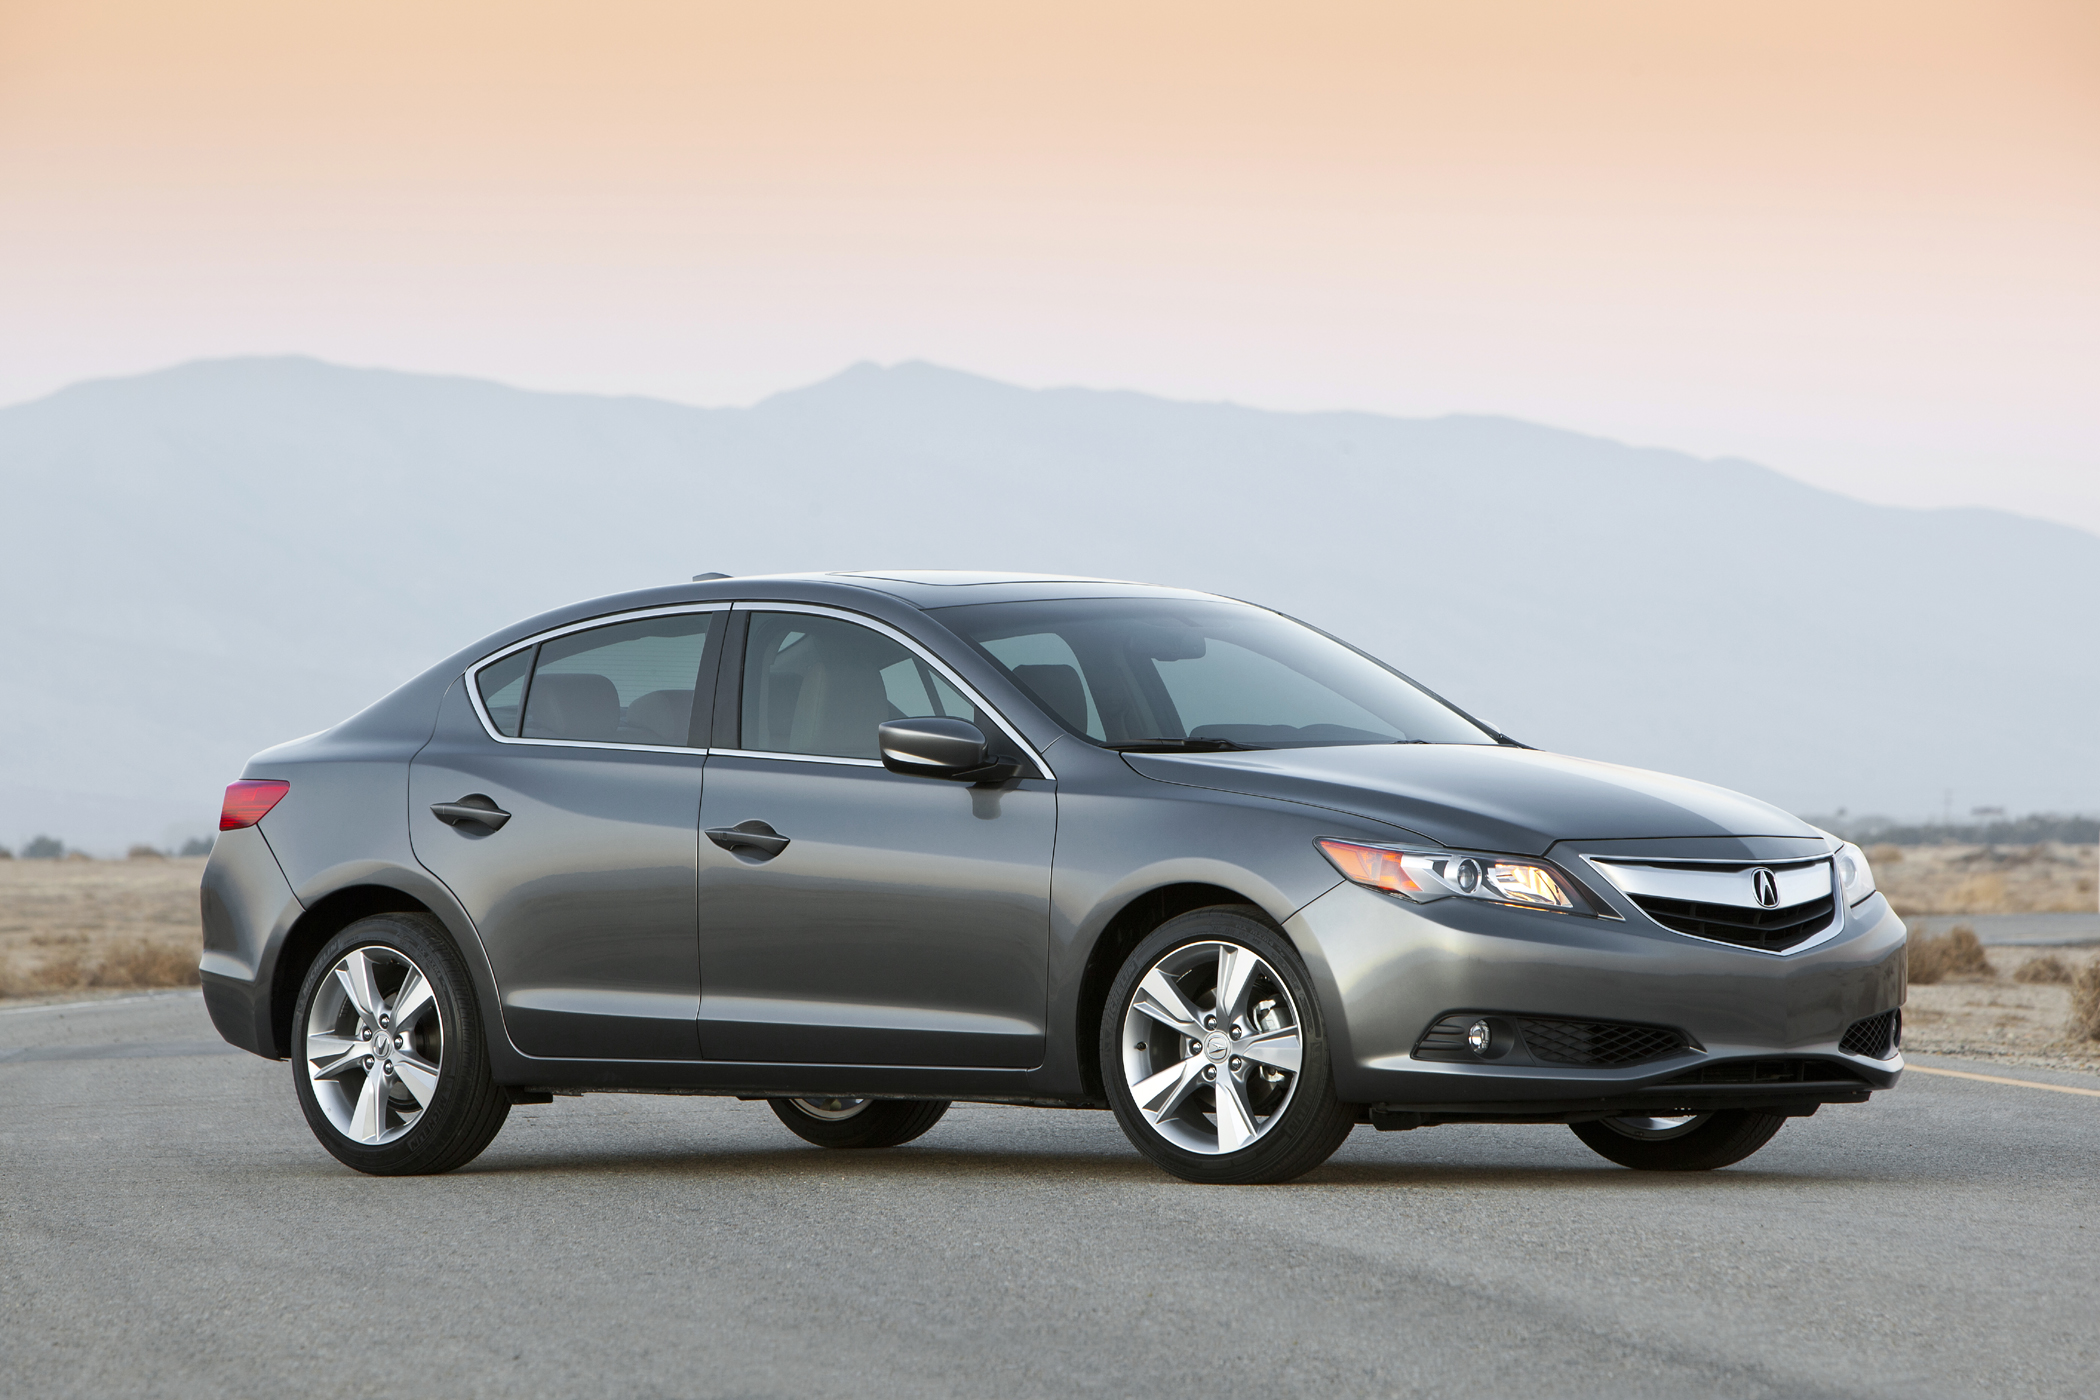 2013 acura ilx designed for the starter buyer new on wheels